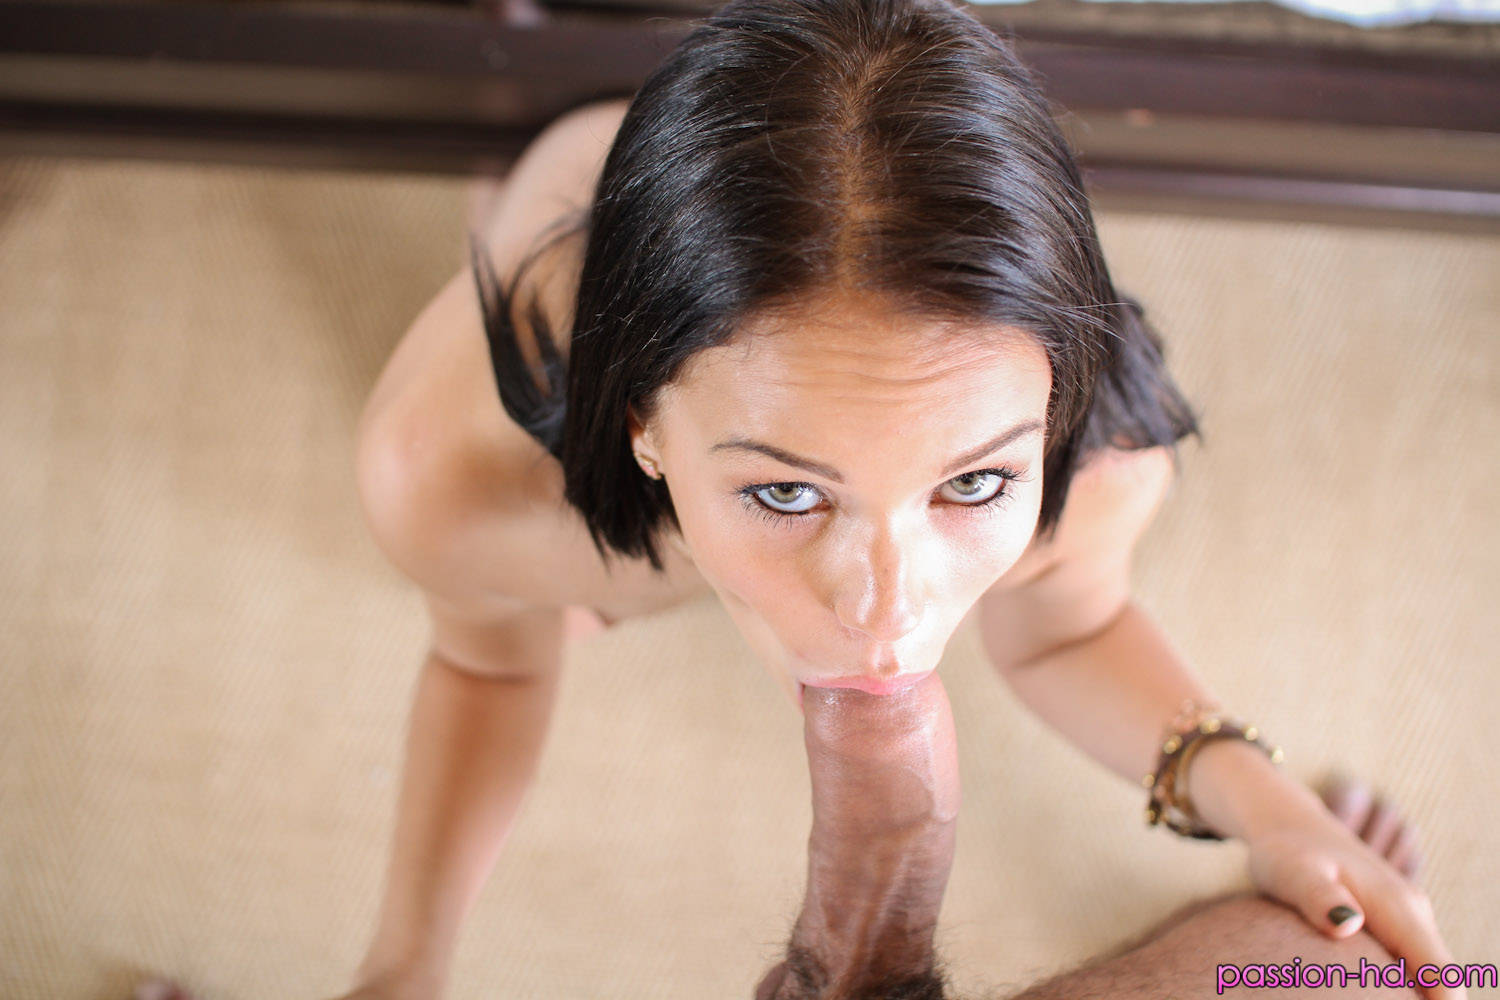 Passion Hd Megan Rain in Home Early 16